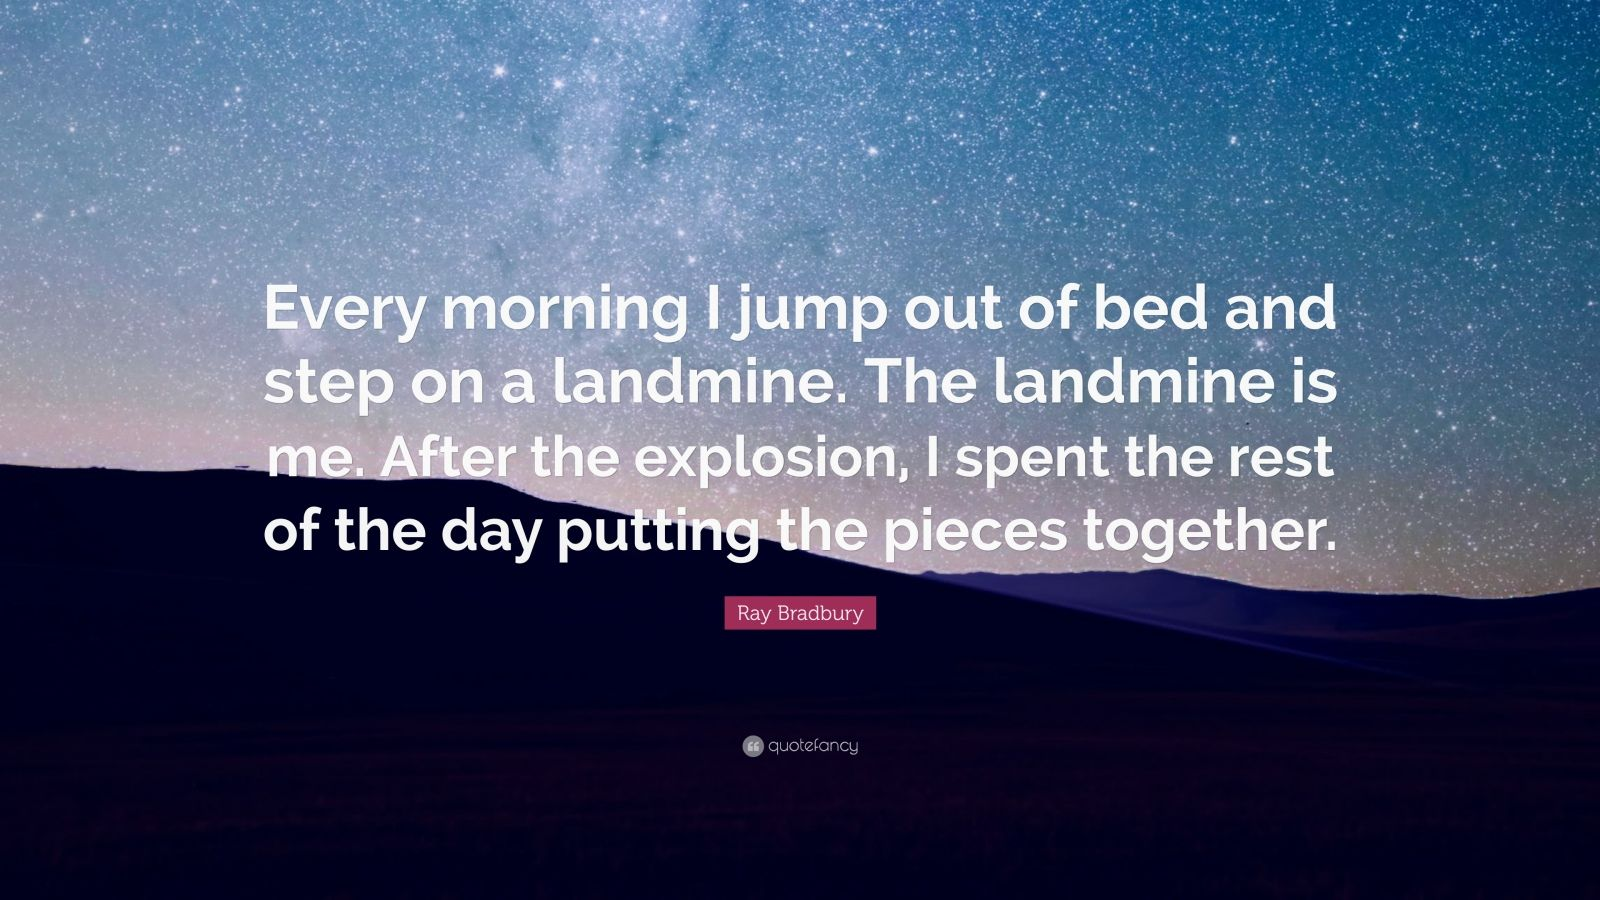 """Ray Bradbury Quote: """"Every morning I jump out of bed and step on a landmine. The landmine is me. After the explosion, I spent the rest of the day putting the pieces together."""""""